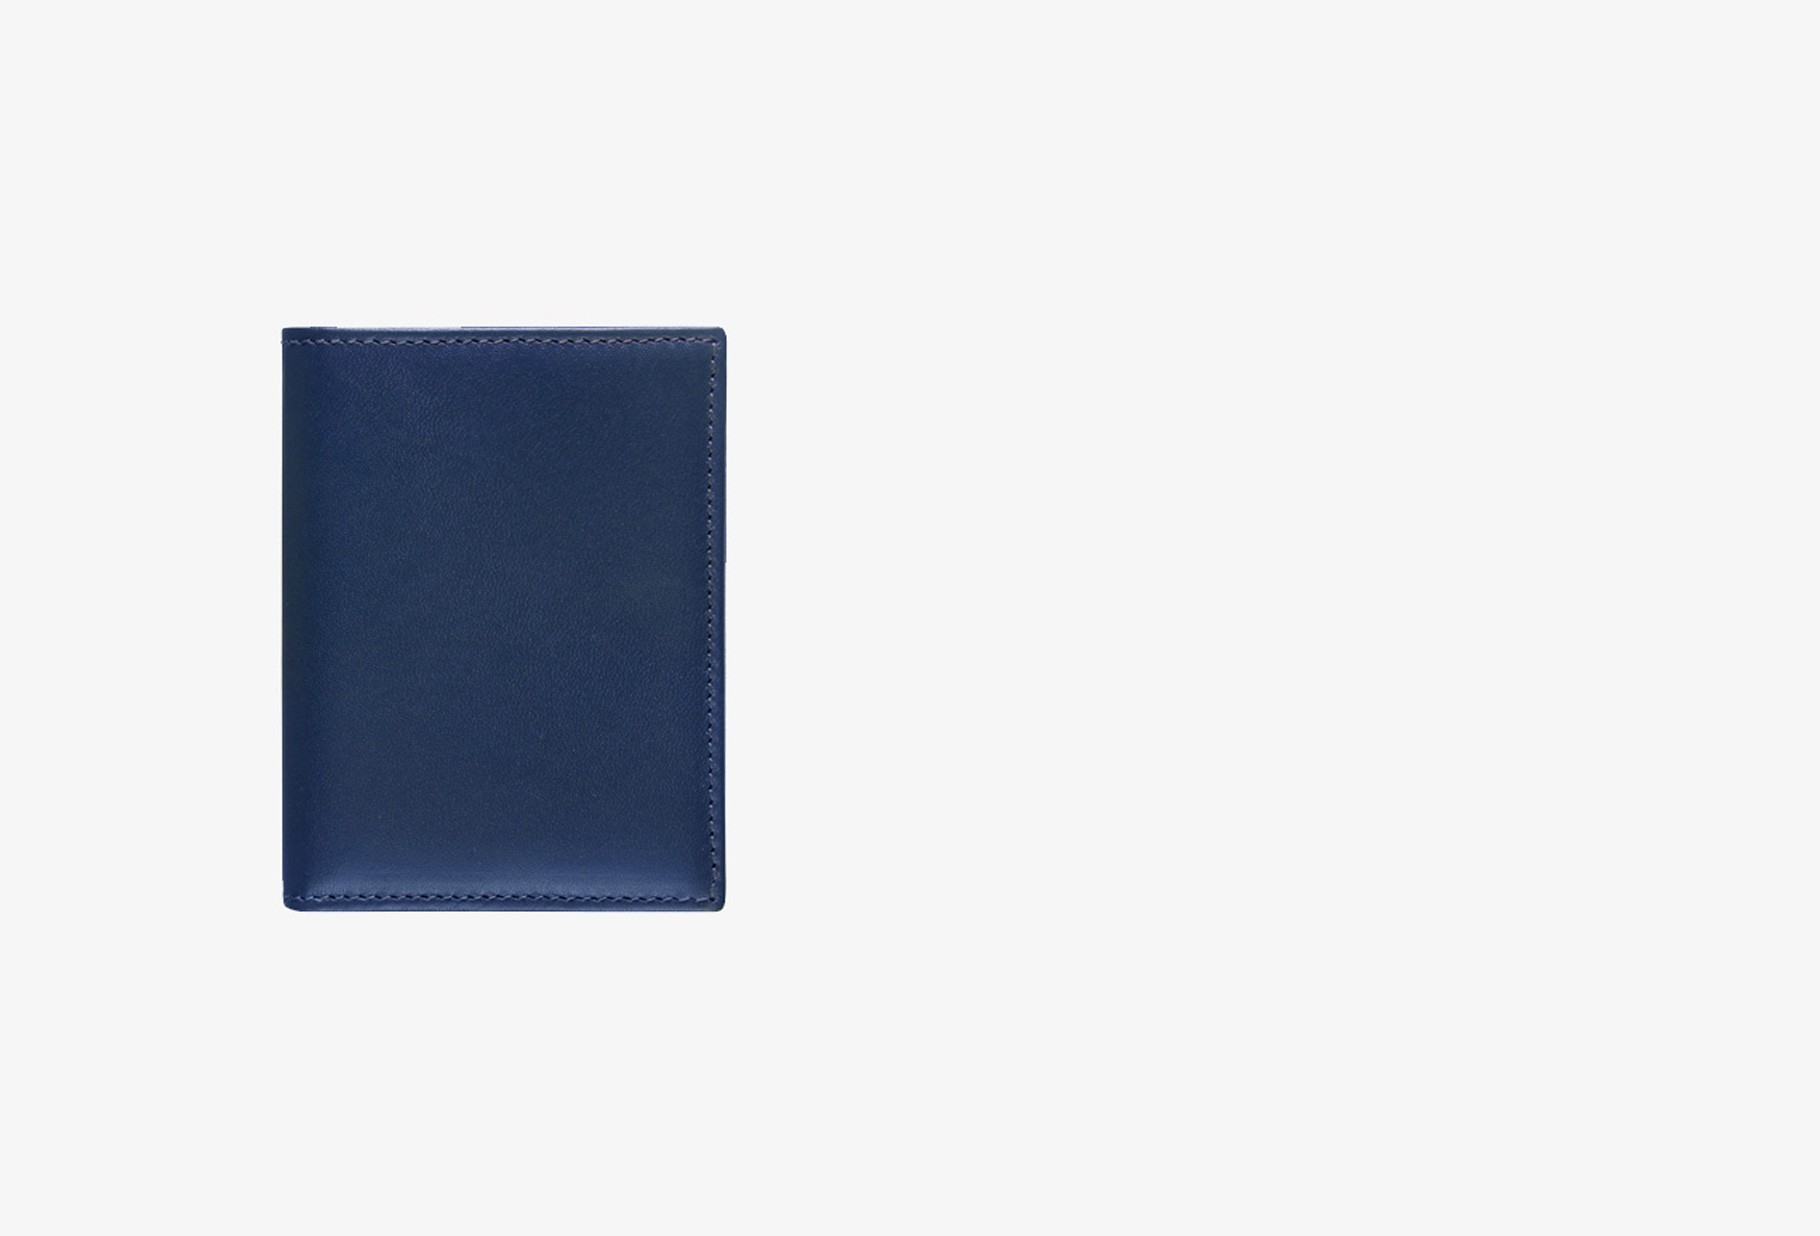 COMME DES GARÇONS WALLETS / Cdg leather wallet classic Sa0641 navy